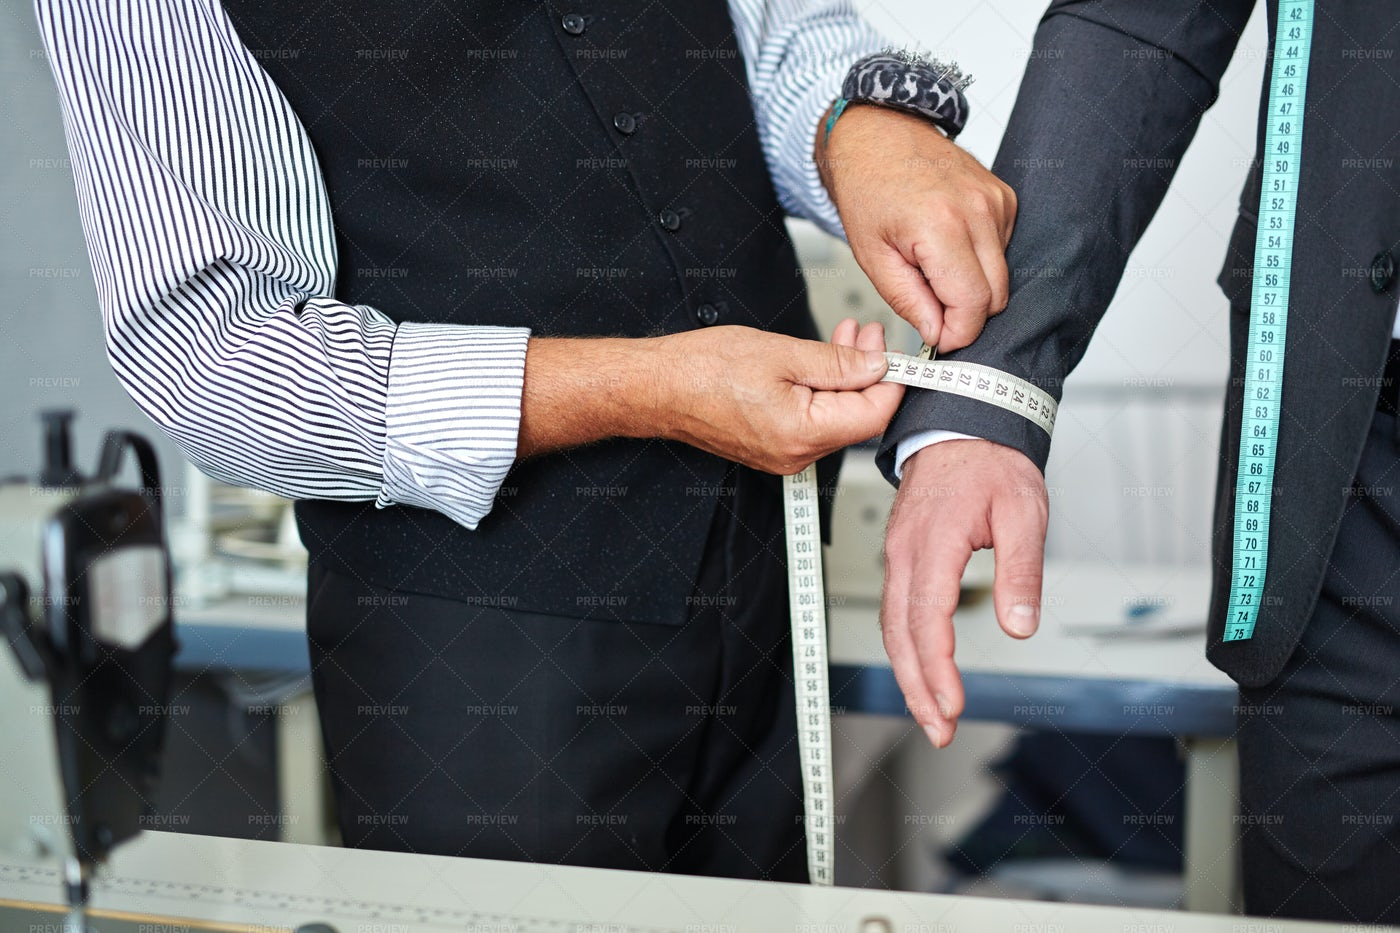 Tailor Taking Measurements In Atelier: Stock Photos